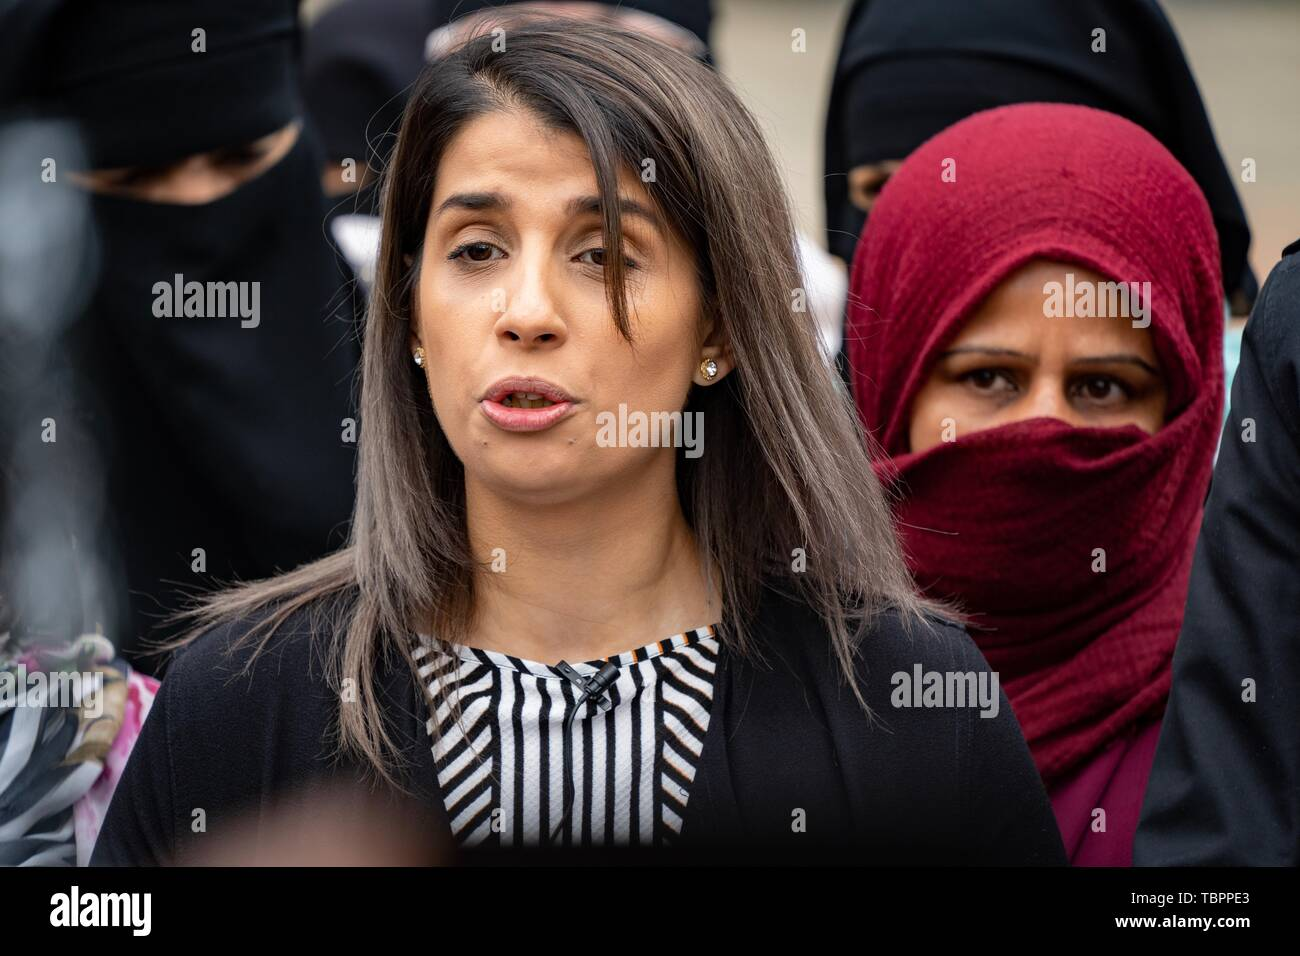 Birmingham, UK. 3rd Jun, 2019. Rosina Afsar speaks to press regarding the High Court injunction imposed on protesting outside Anderton Park primary school outside Birmingham City Council house, Birmingham, UK. Protesters object to teaching of LGBTQ+ values at the primary school. Credit: Vladimir Morozov - Stock Image